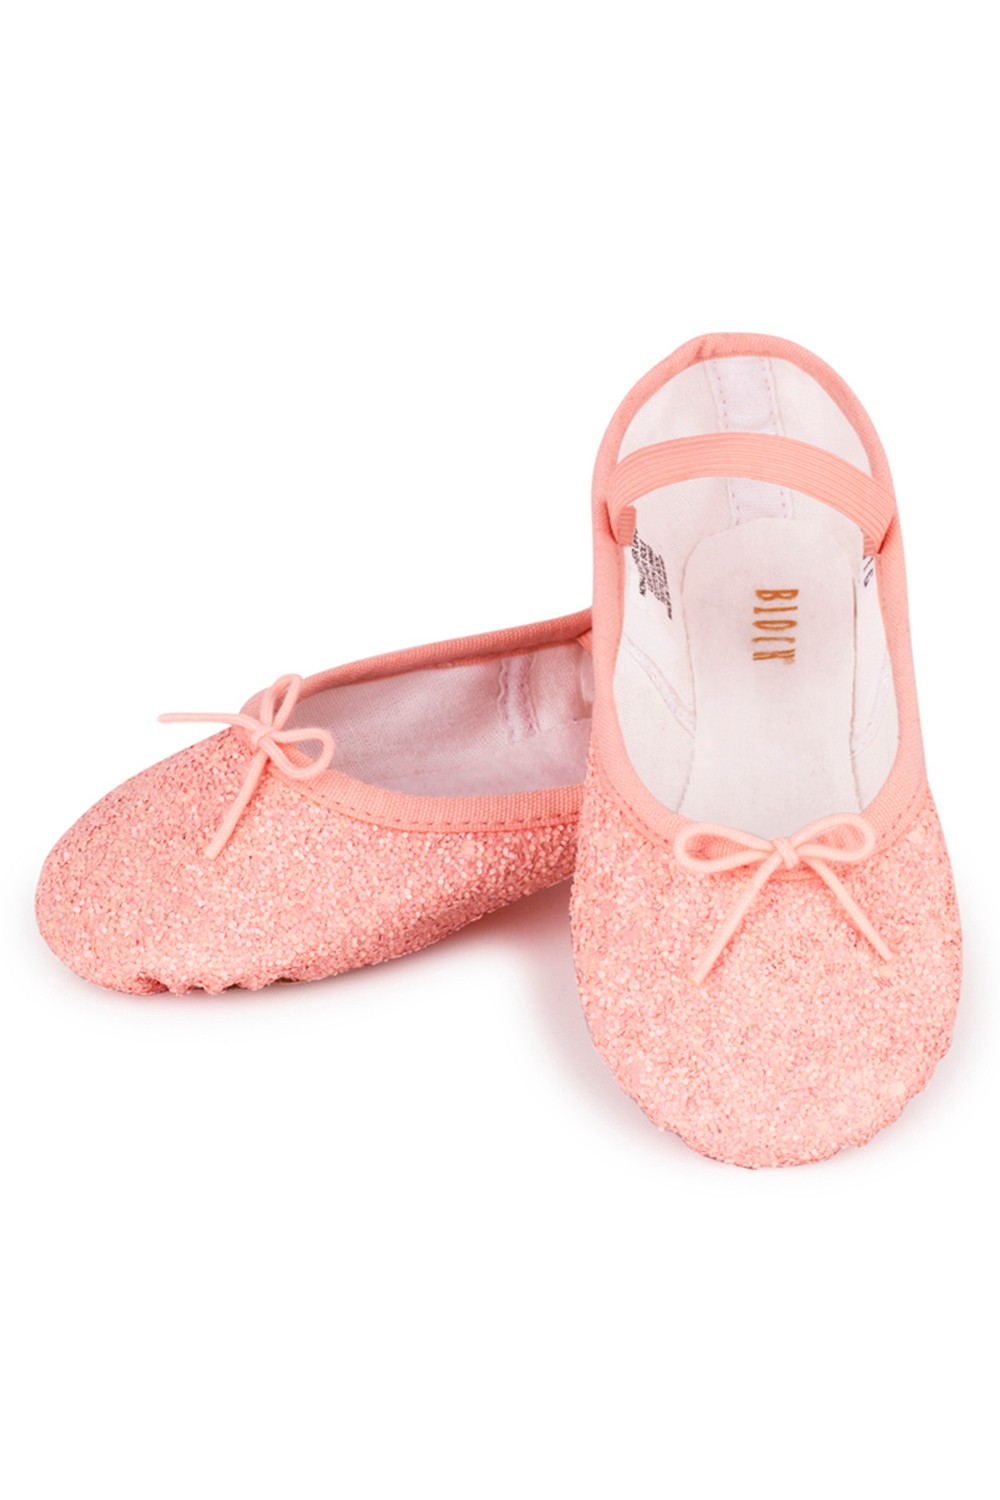 Sparkle - Girls Girl's Ballet Shoes